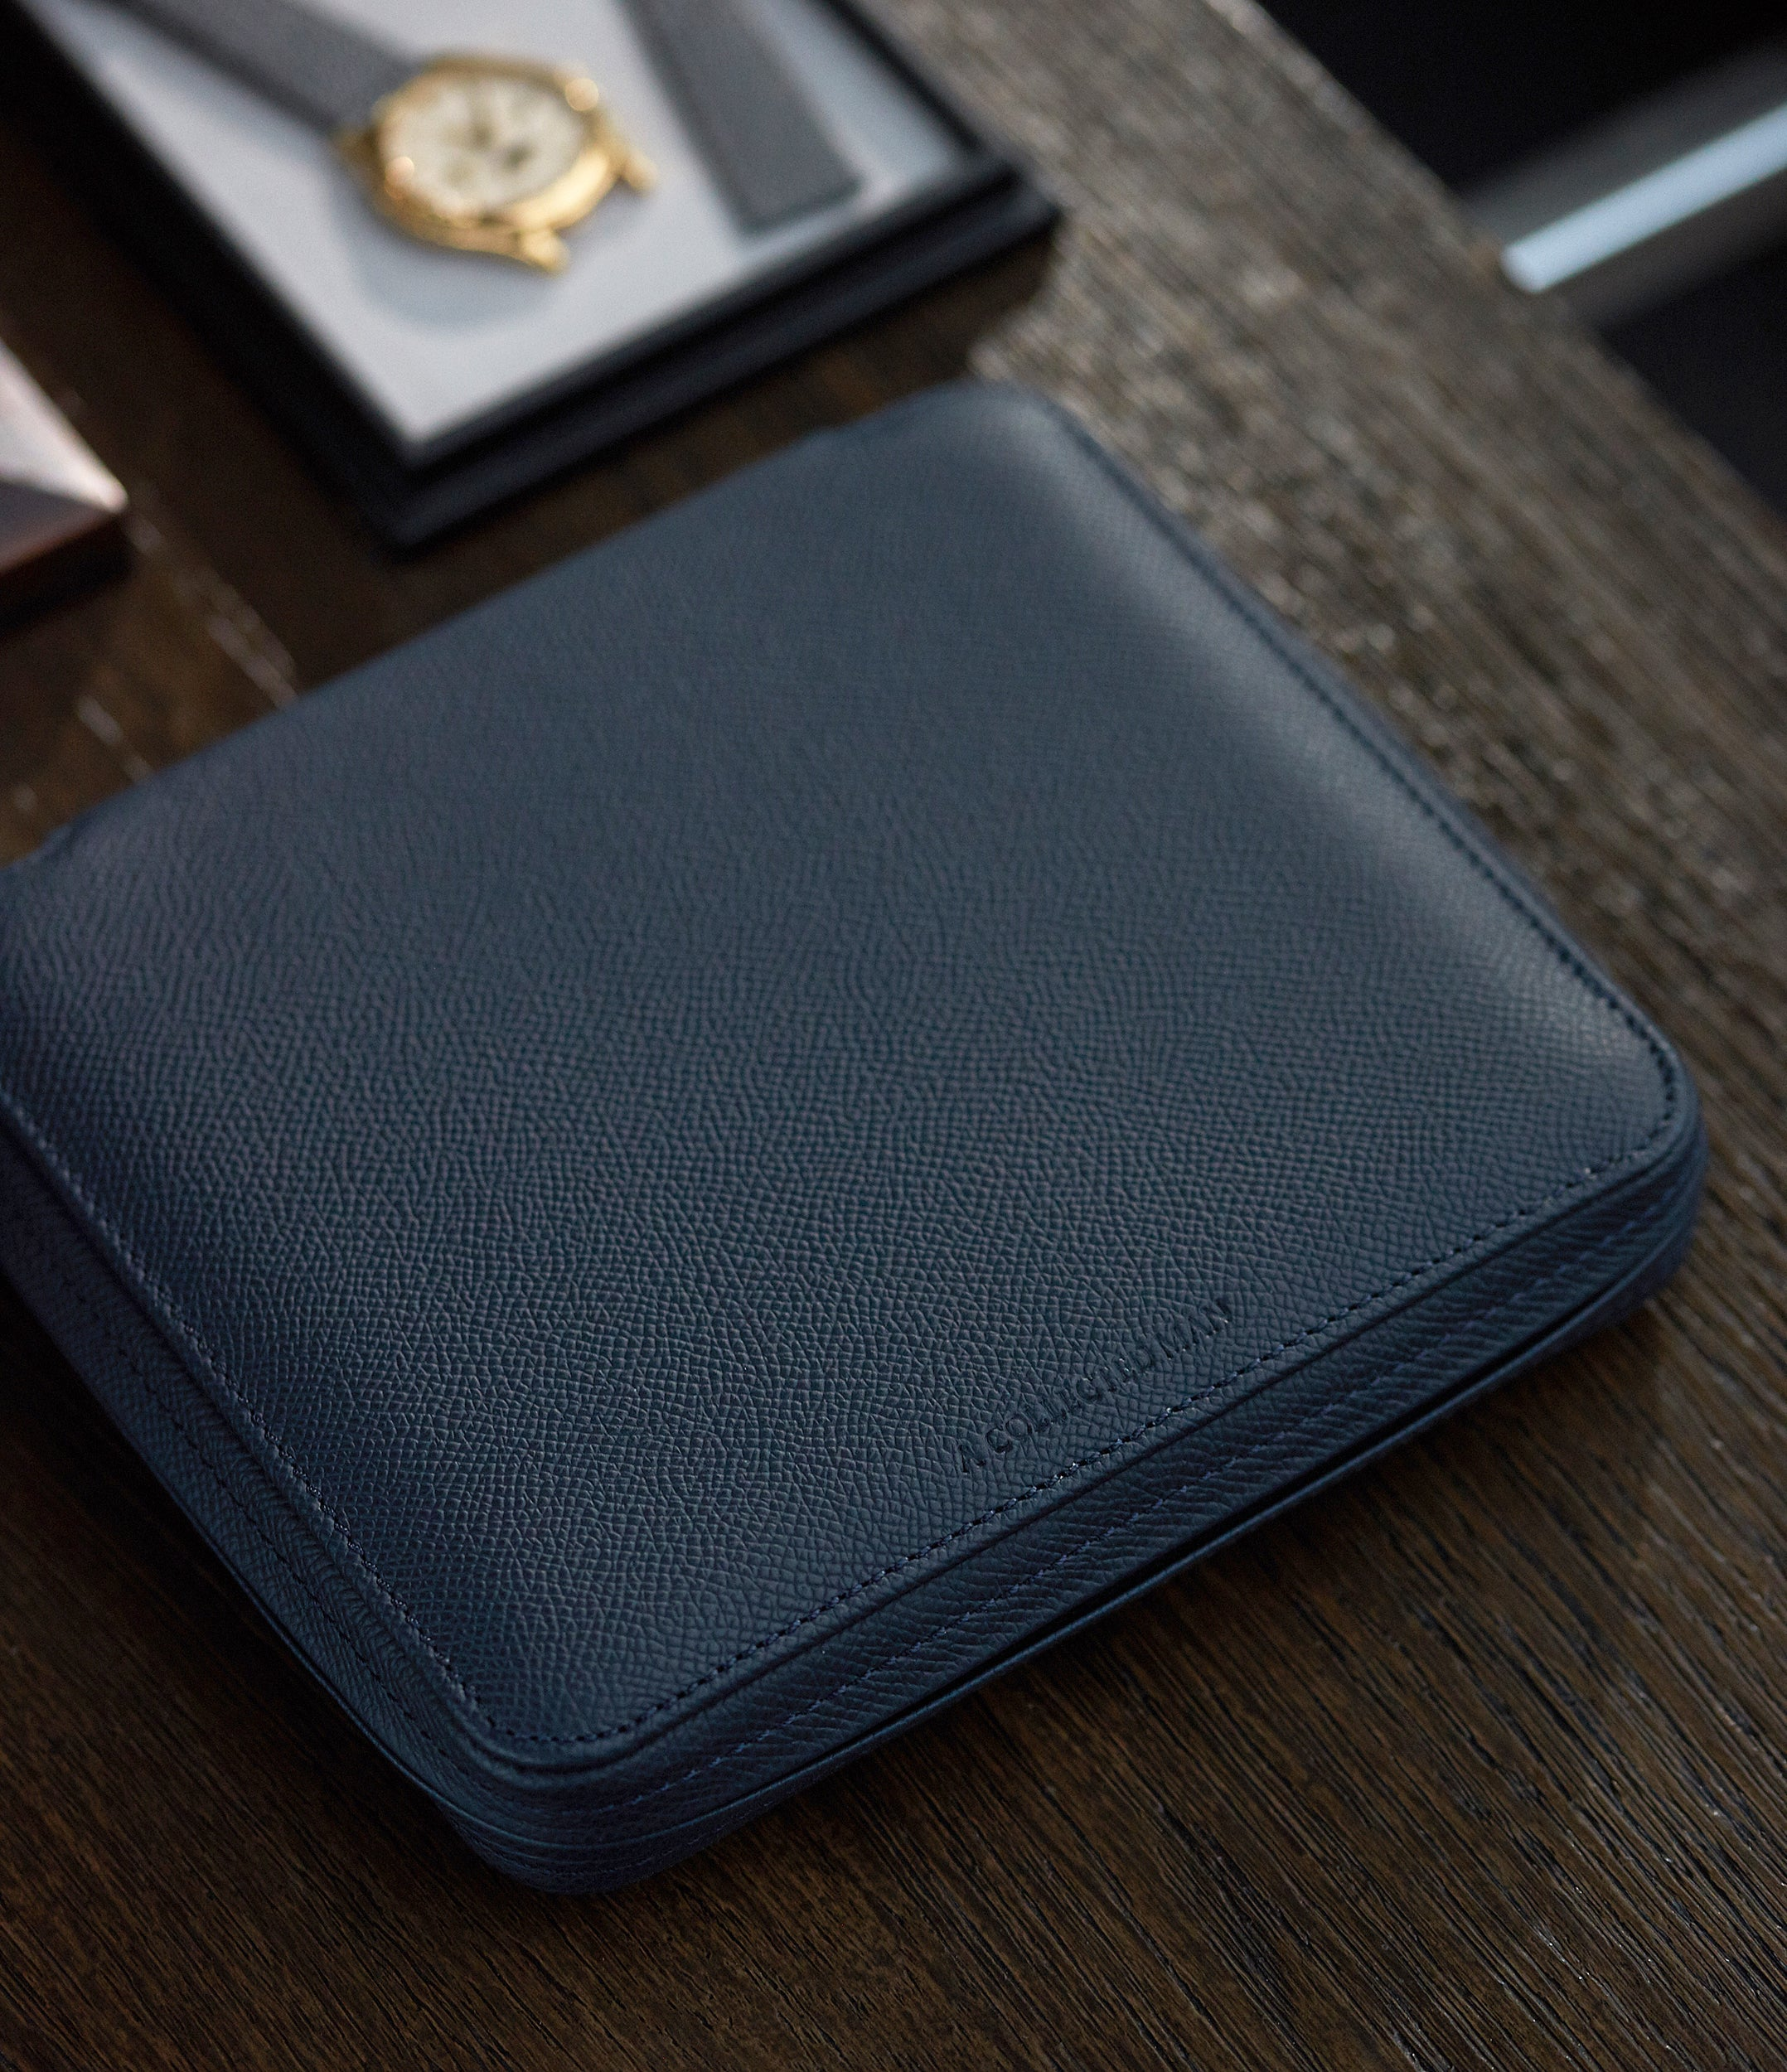 selling navy blue calfskin La Rochelle watch travel zip pouch accessories 6 watches order online A Collected Man London